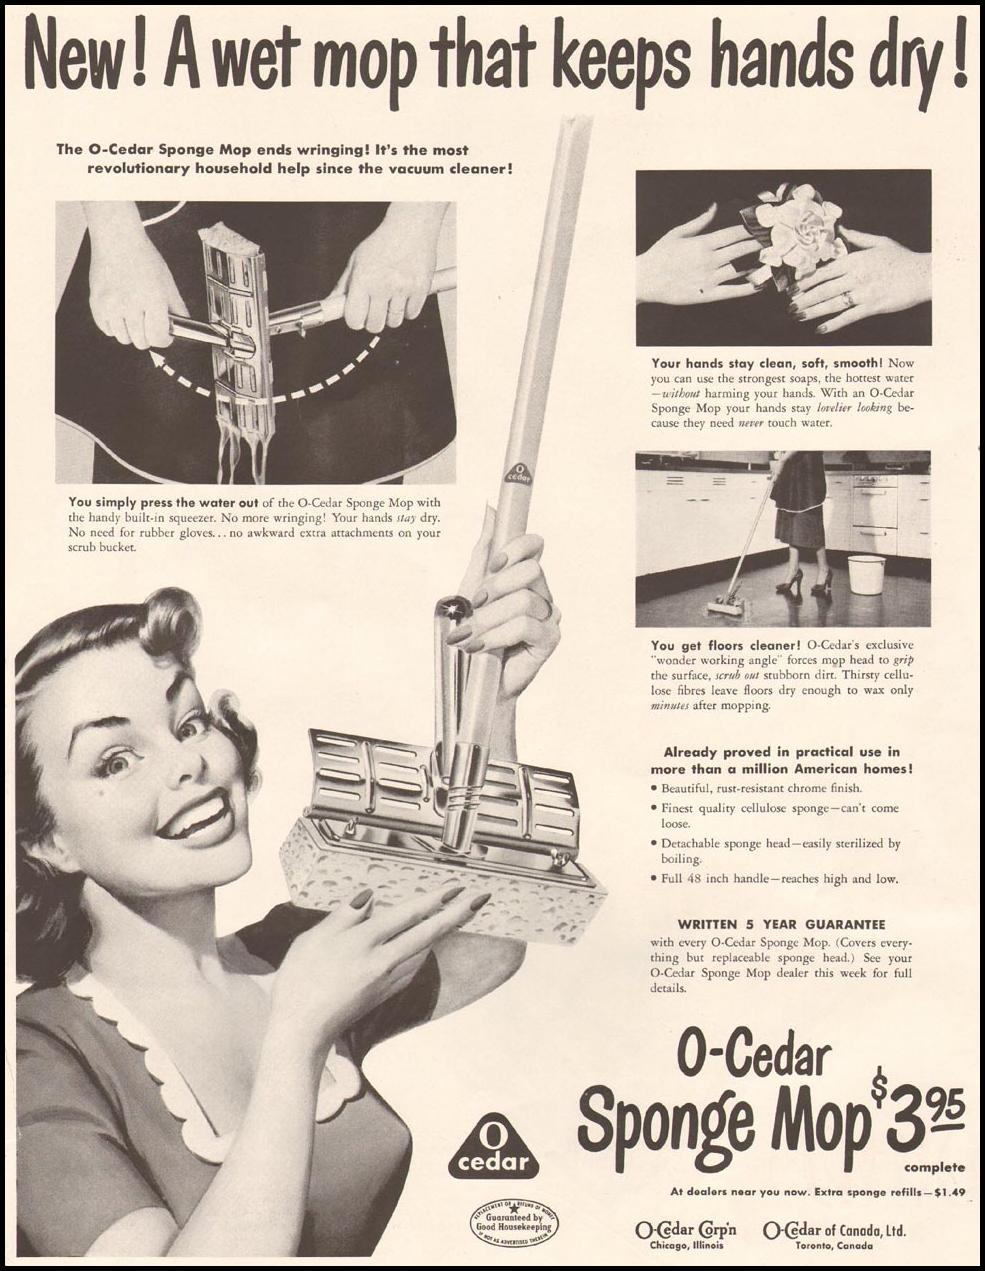 O-CEDAR SPONGE MOP